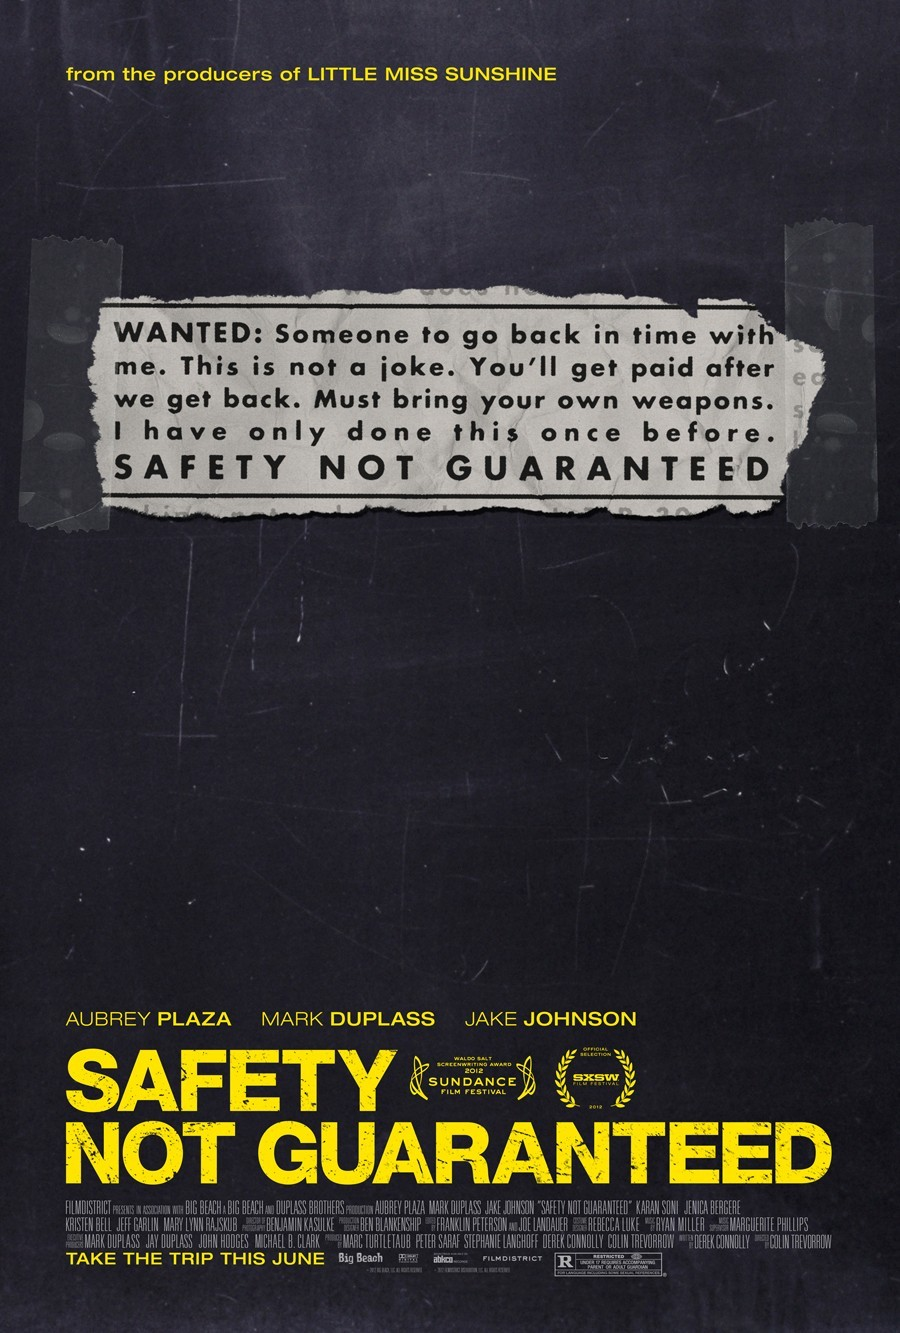 Movies Watched in 2012  234. Safety Not Guaranteed (Colin Trevorrow, 2012) I'm going to write up a review on this one, but I really enjoyed this a lot more than I thought I would. Mark Duplass steals the show, but his chemistry with Aubrey Plaza is just wonderful. It has some minor issues, but it doesn't take away much from it. Check it out if you get the chance. [4/5]